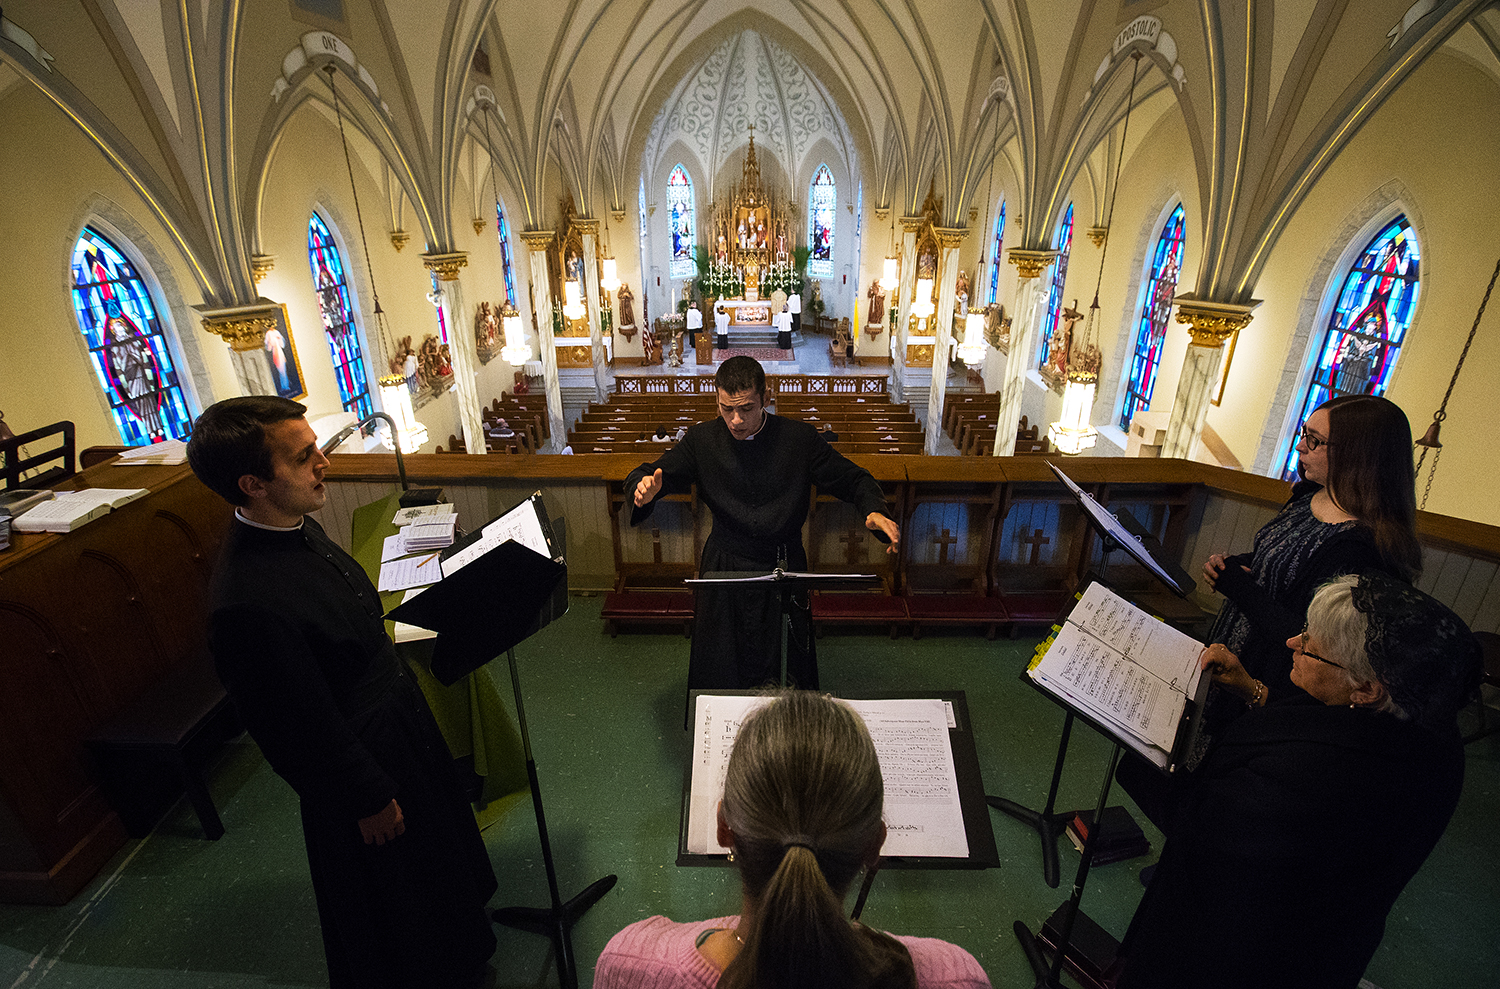 Brother Andrew Panzer directs the schola during the Latin Mass on Easter Sunday at Sacred Heart Church in Springfield, Ill., April 1, 2018. [Ted Schurter/The State Journal-Register]